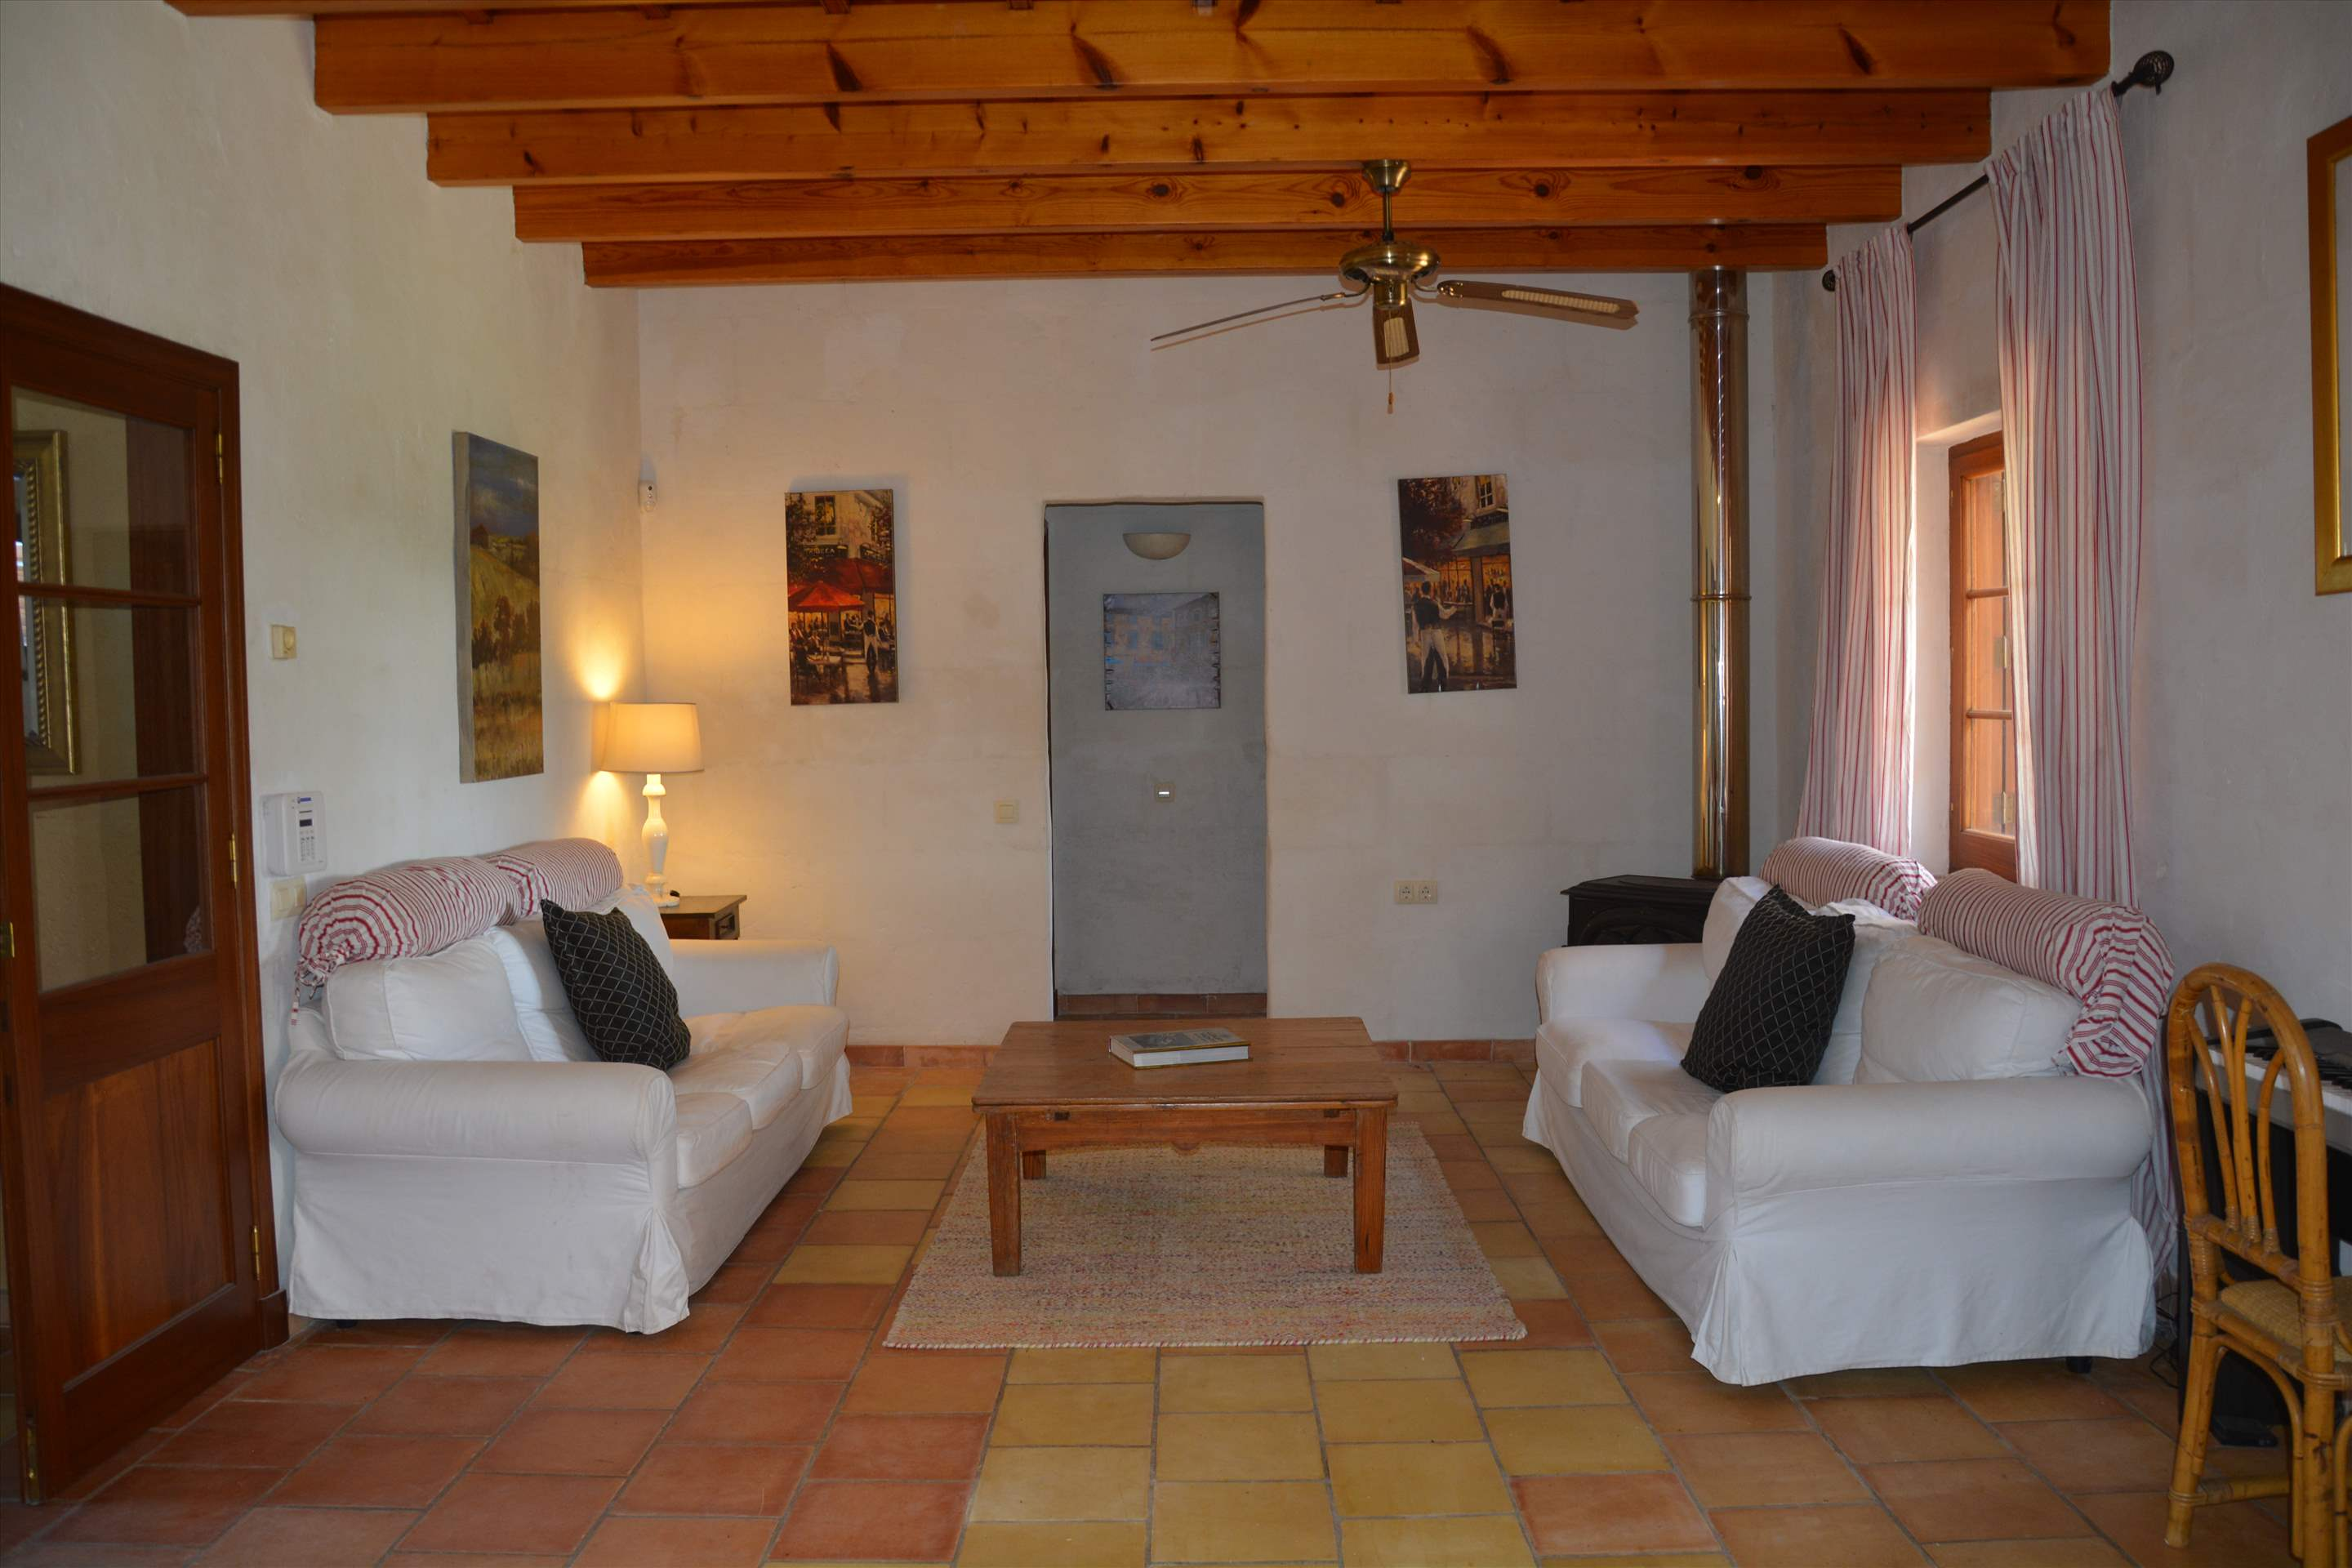 Les Arcs, 5 bedroom villa in Mahon, San Luis & South East, Menorca Photo #6